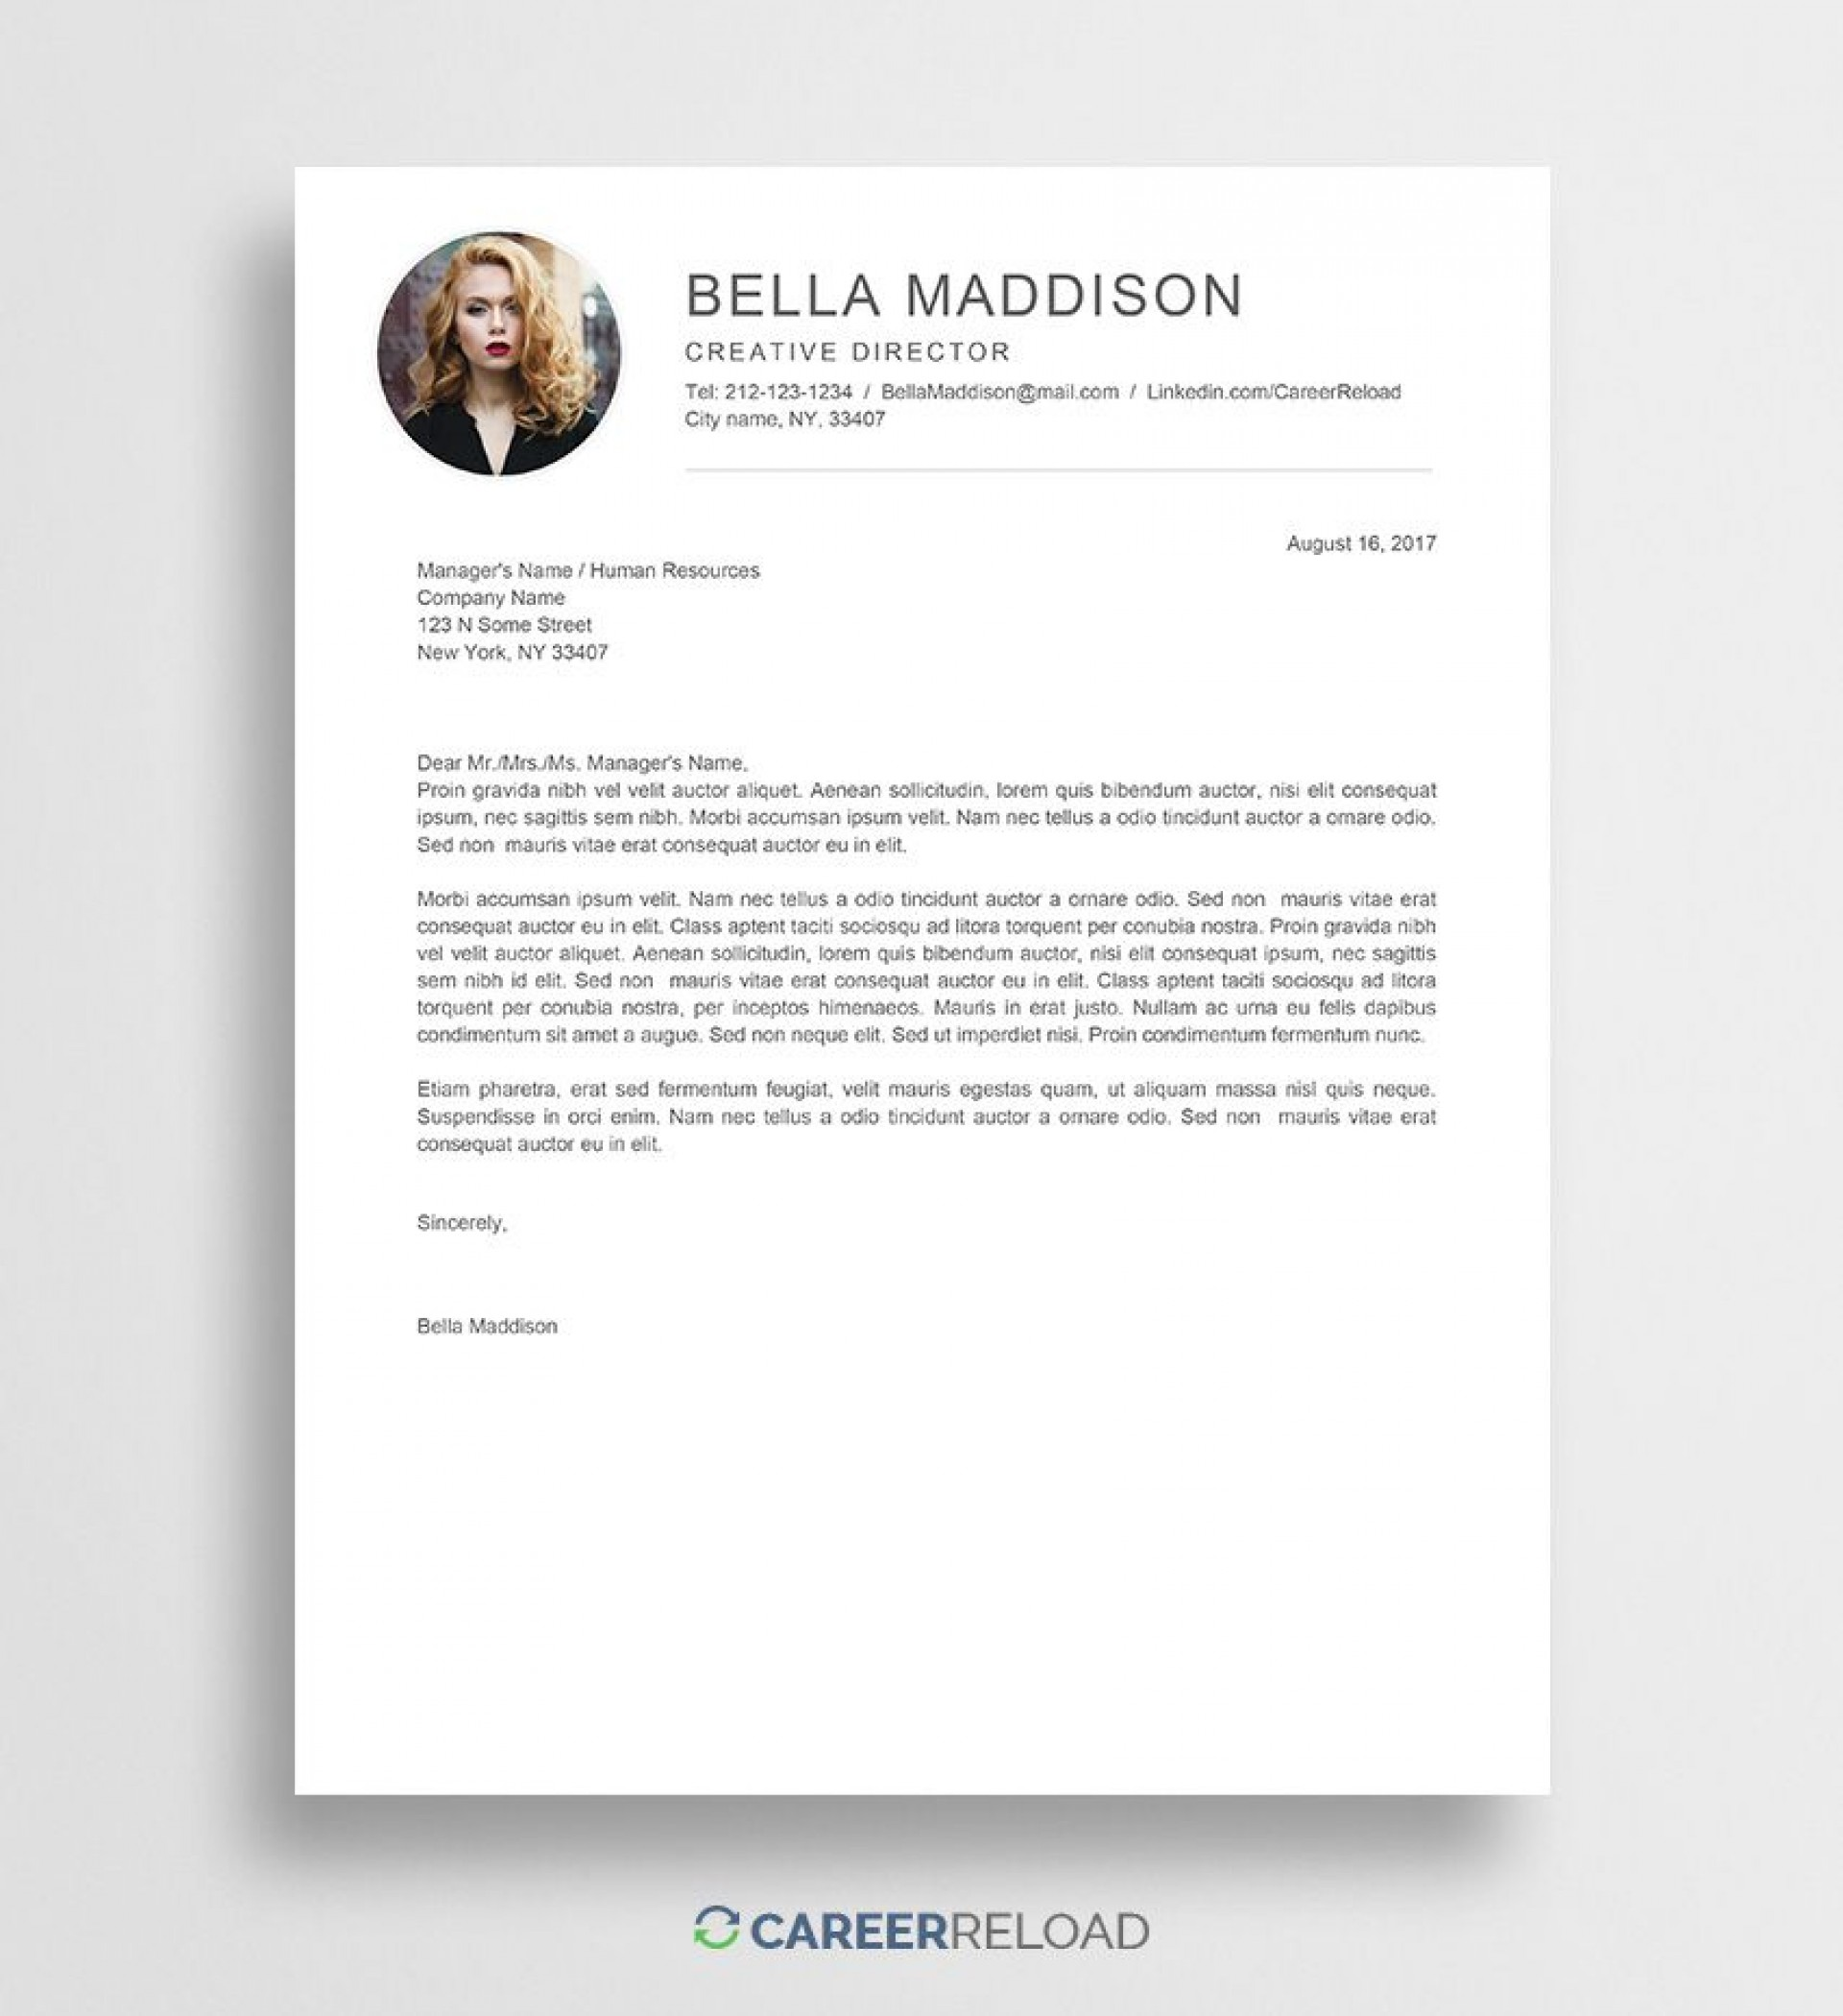 008 Remarkable Resume Cover Letter Template Word Free Inspiration 1920